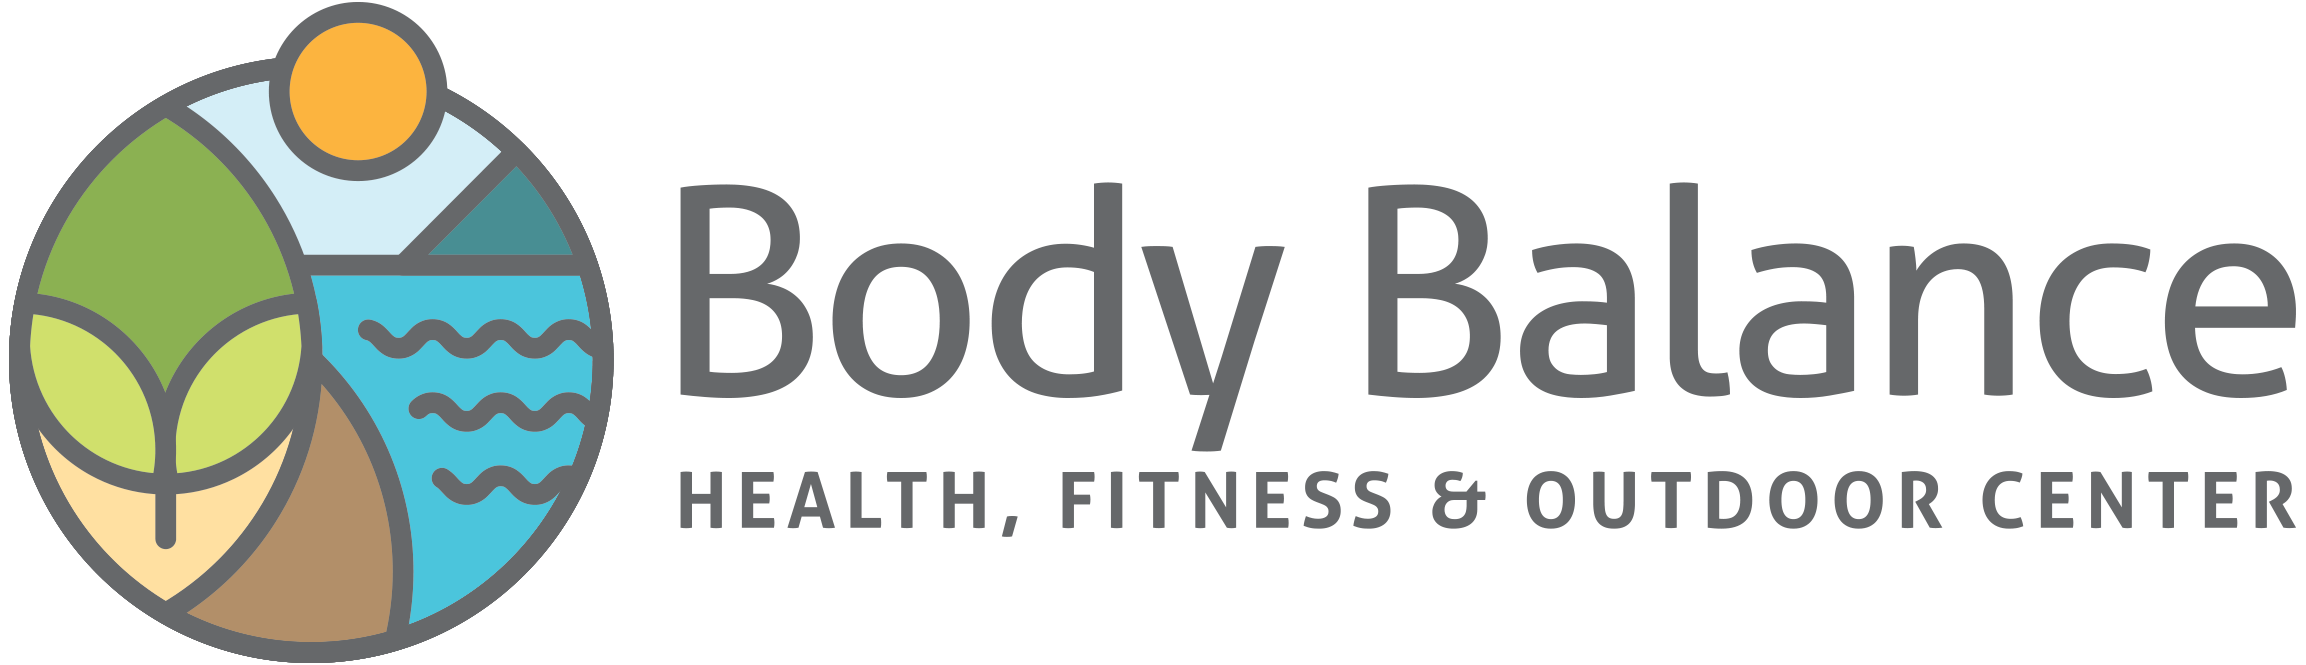 Body Balance of Suttons Bay & Get Outside Rentals